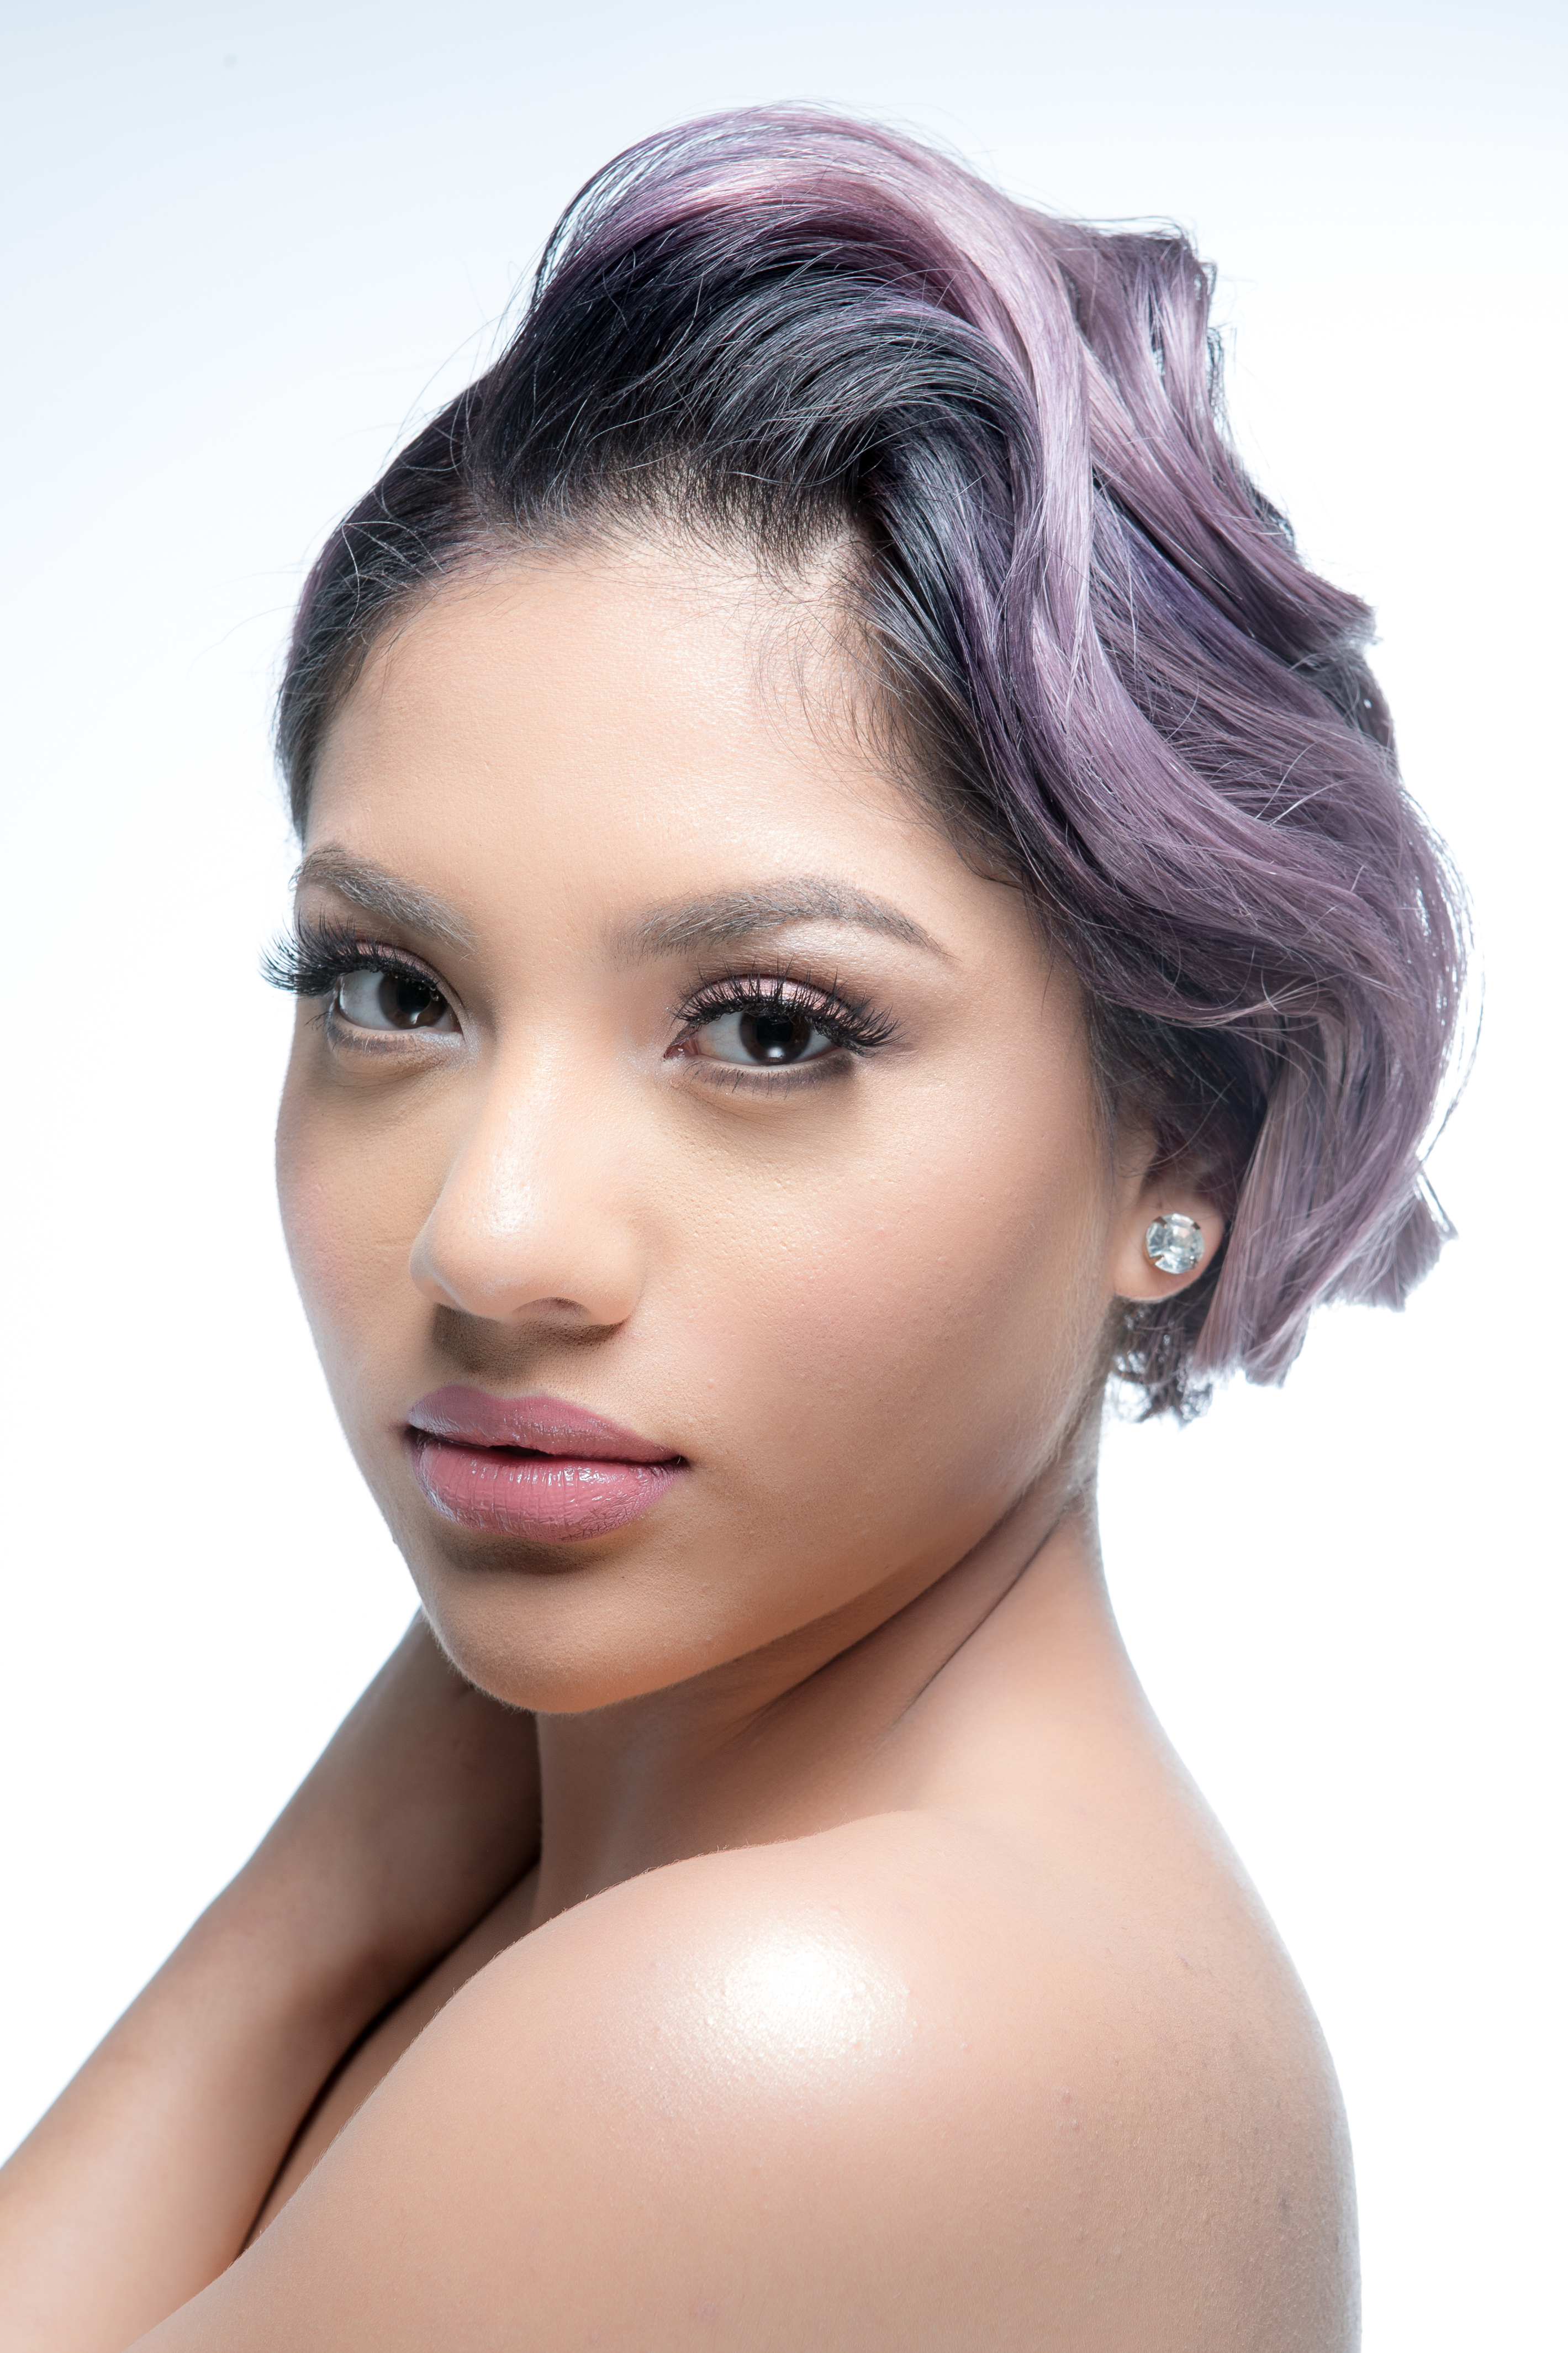 Model with pastel-lilac hair that is swept up in a wavy updo